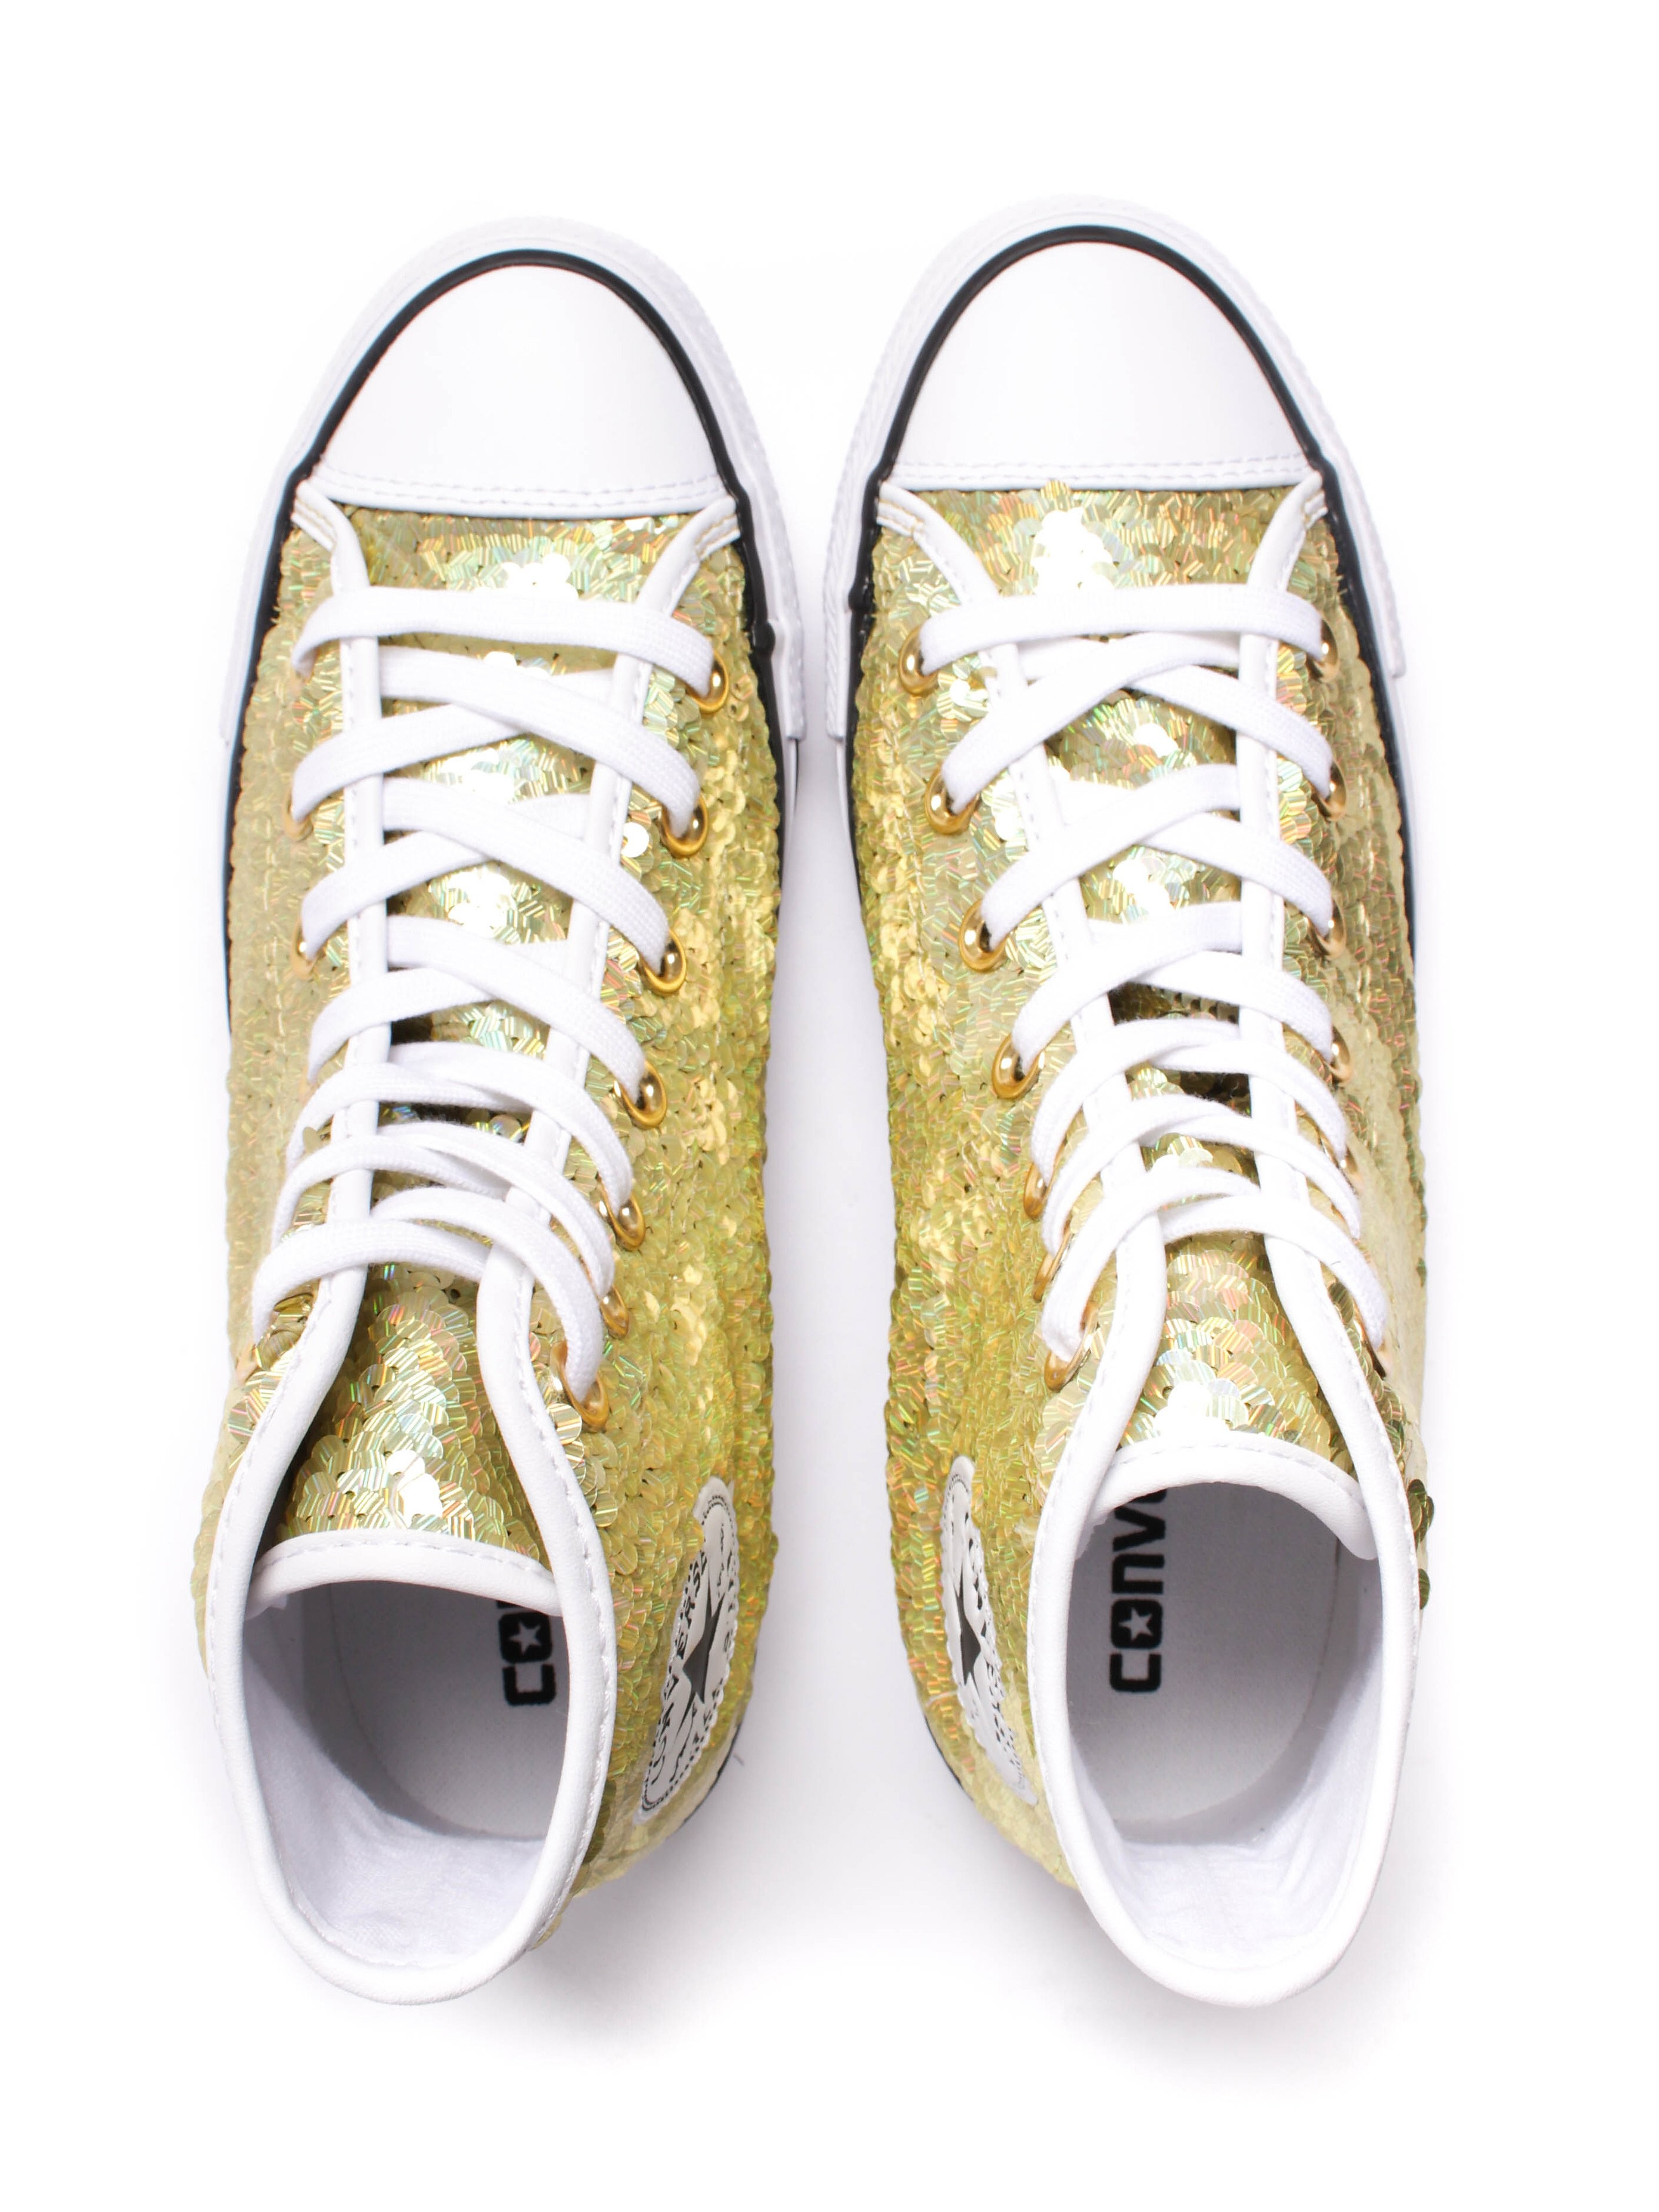 Converse All Star High Top - Gold